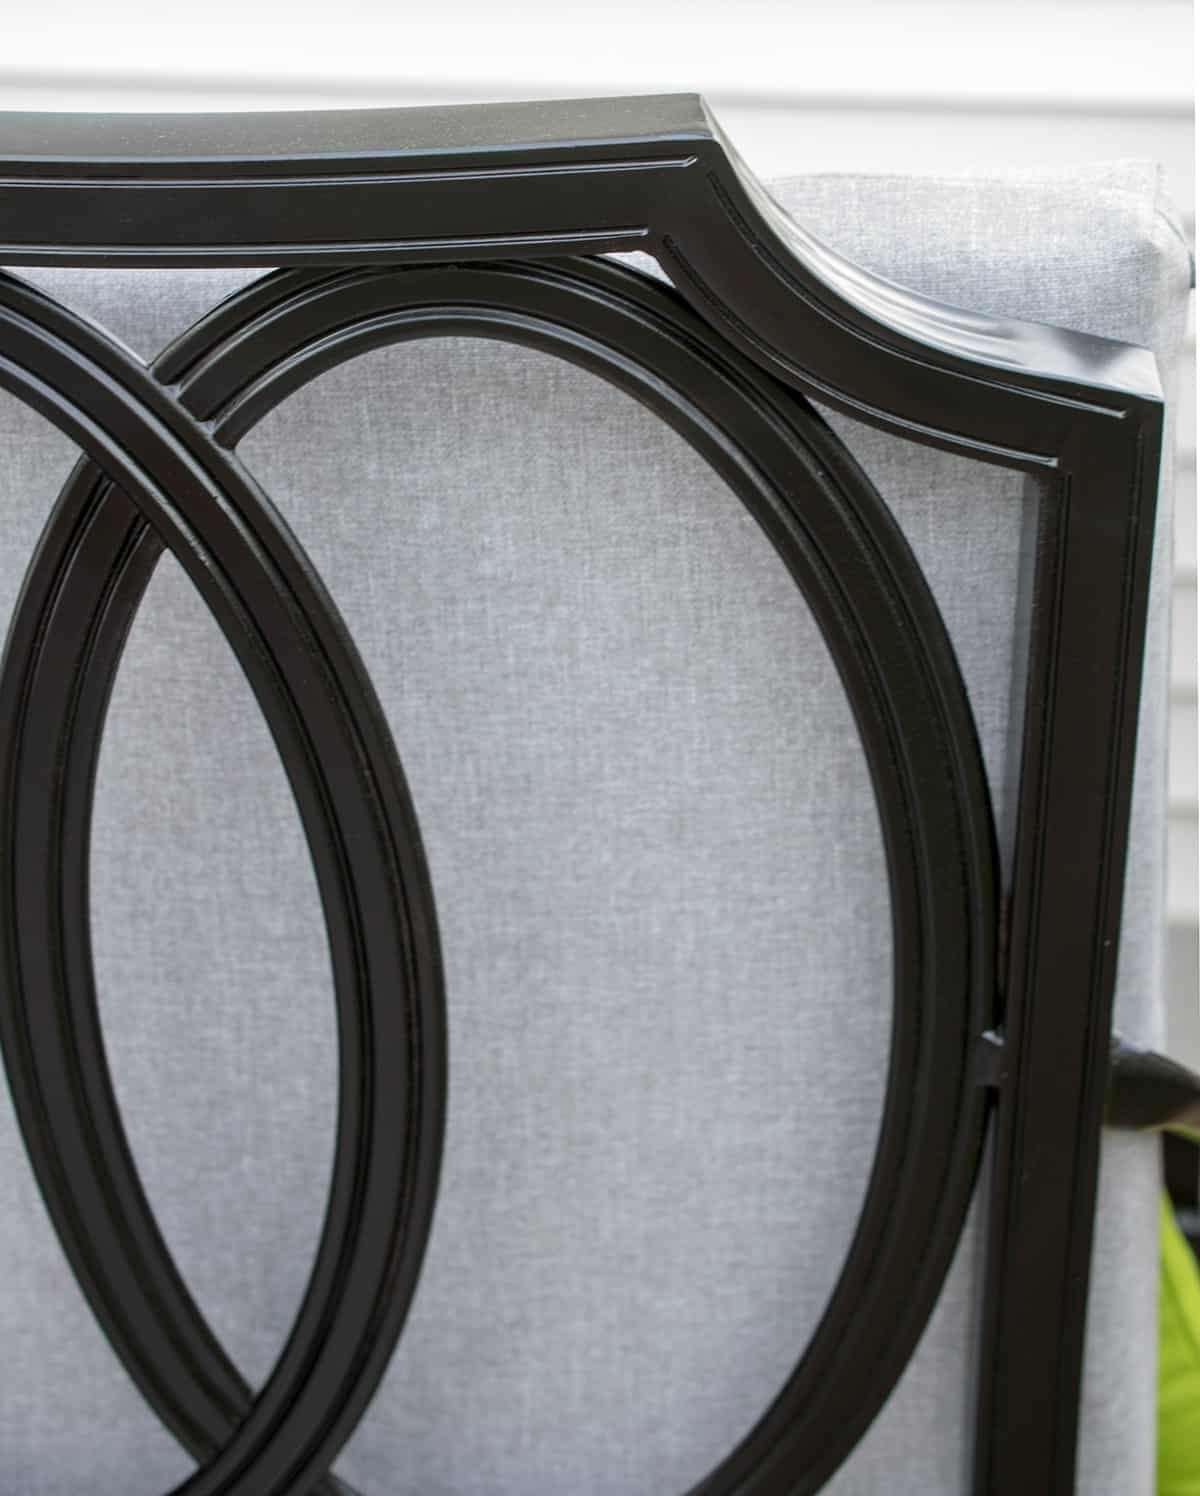 Refinished black patio chair detail show up close.